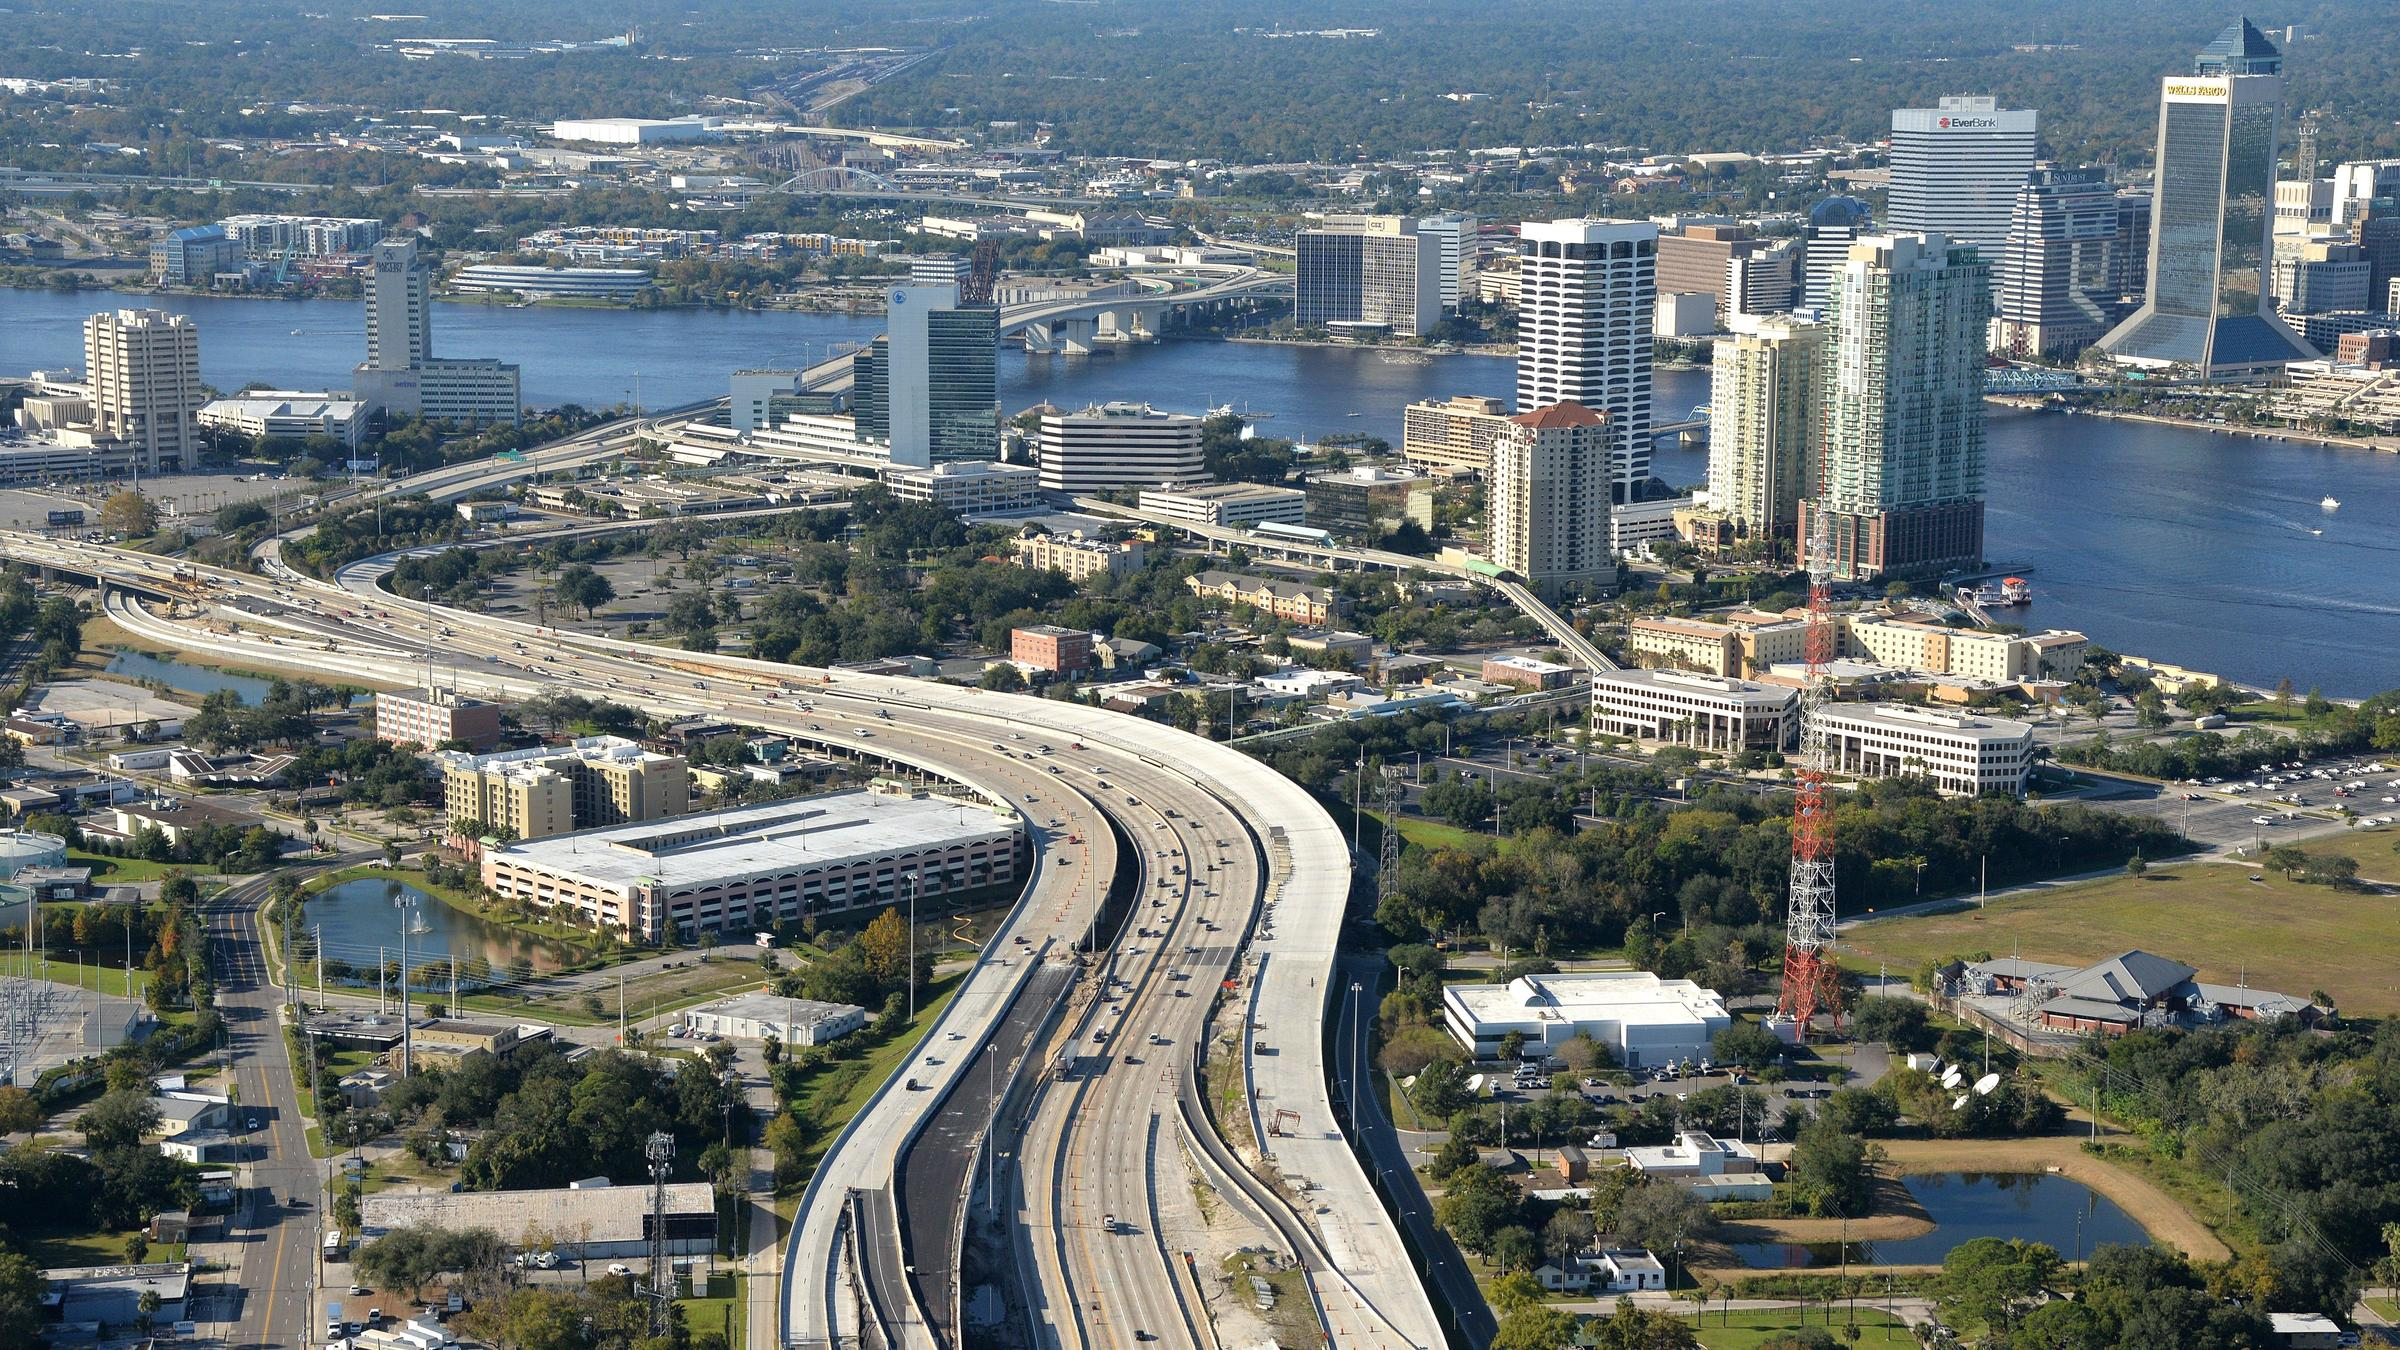 Jacksonville Lands 13th On List For Population growth